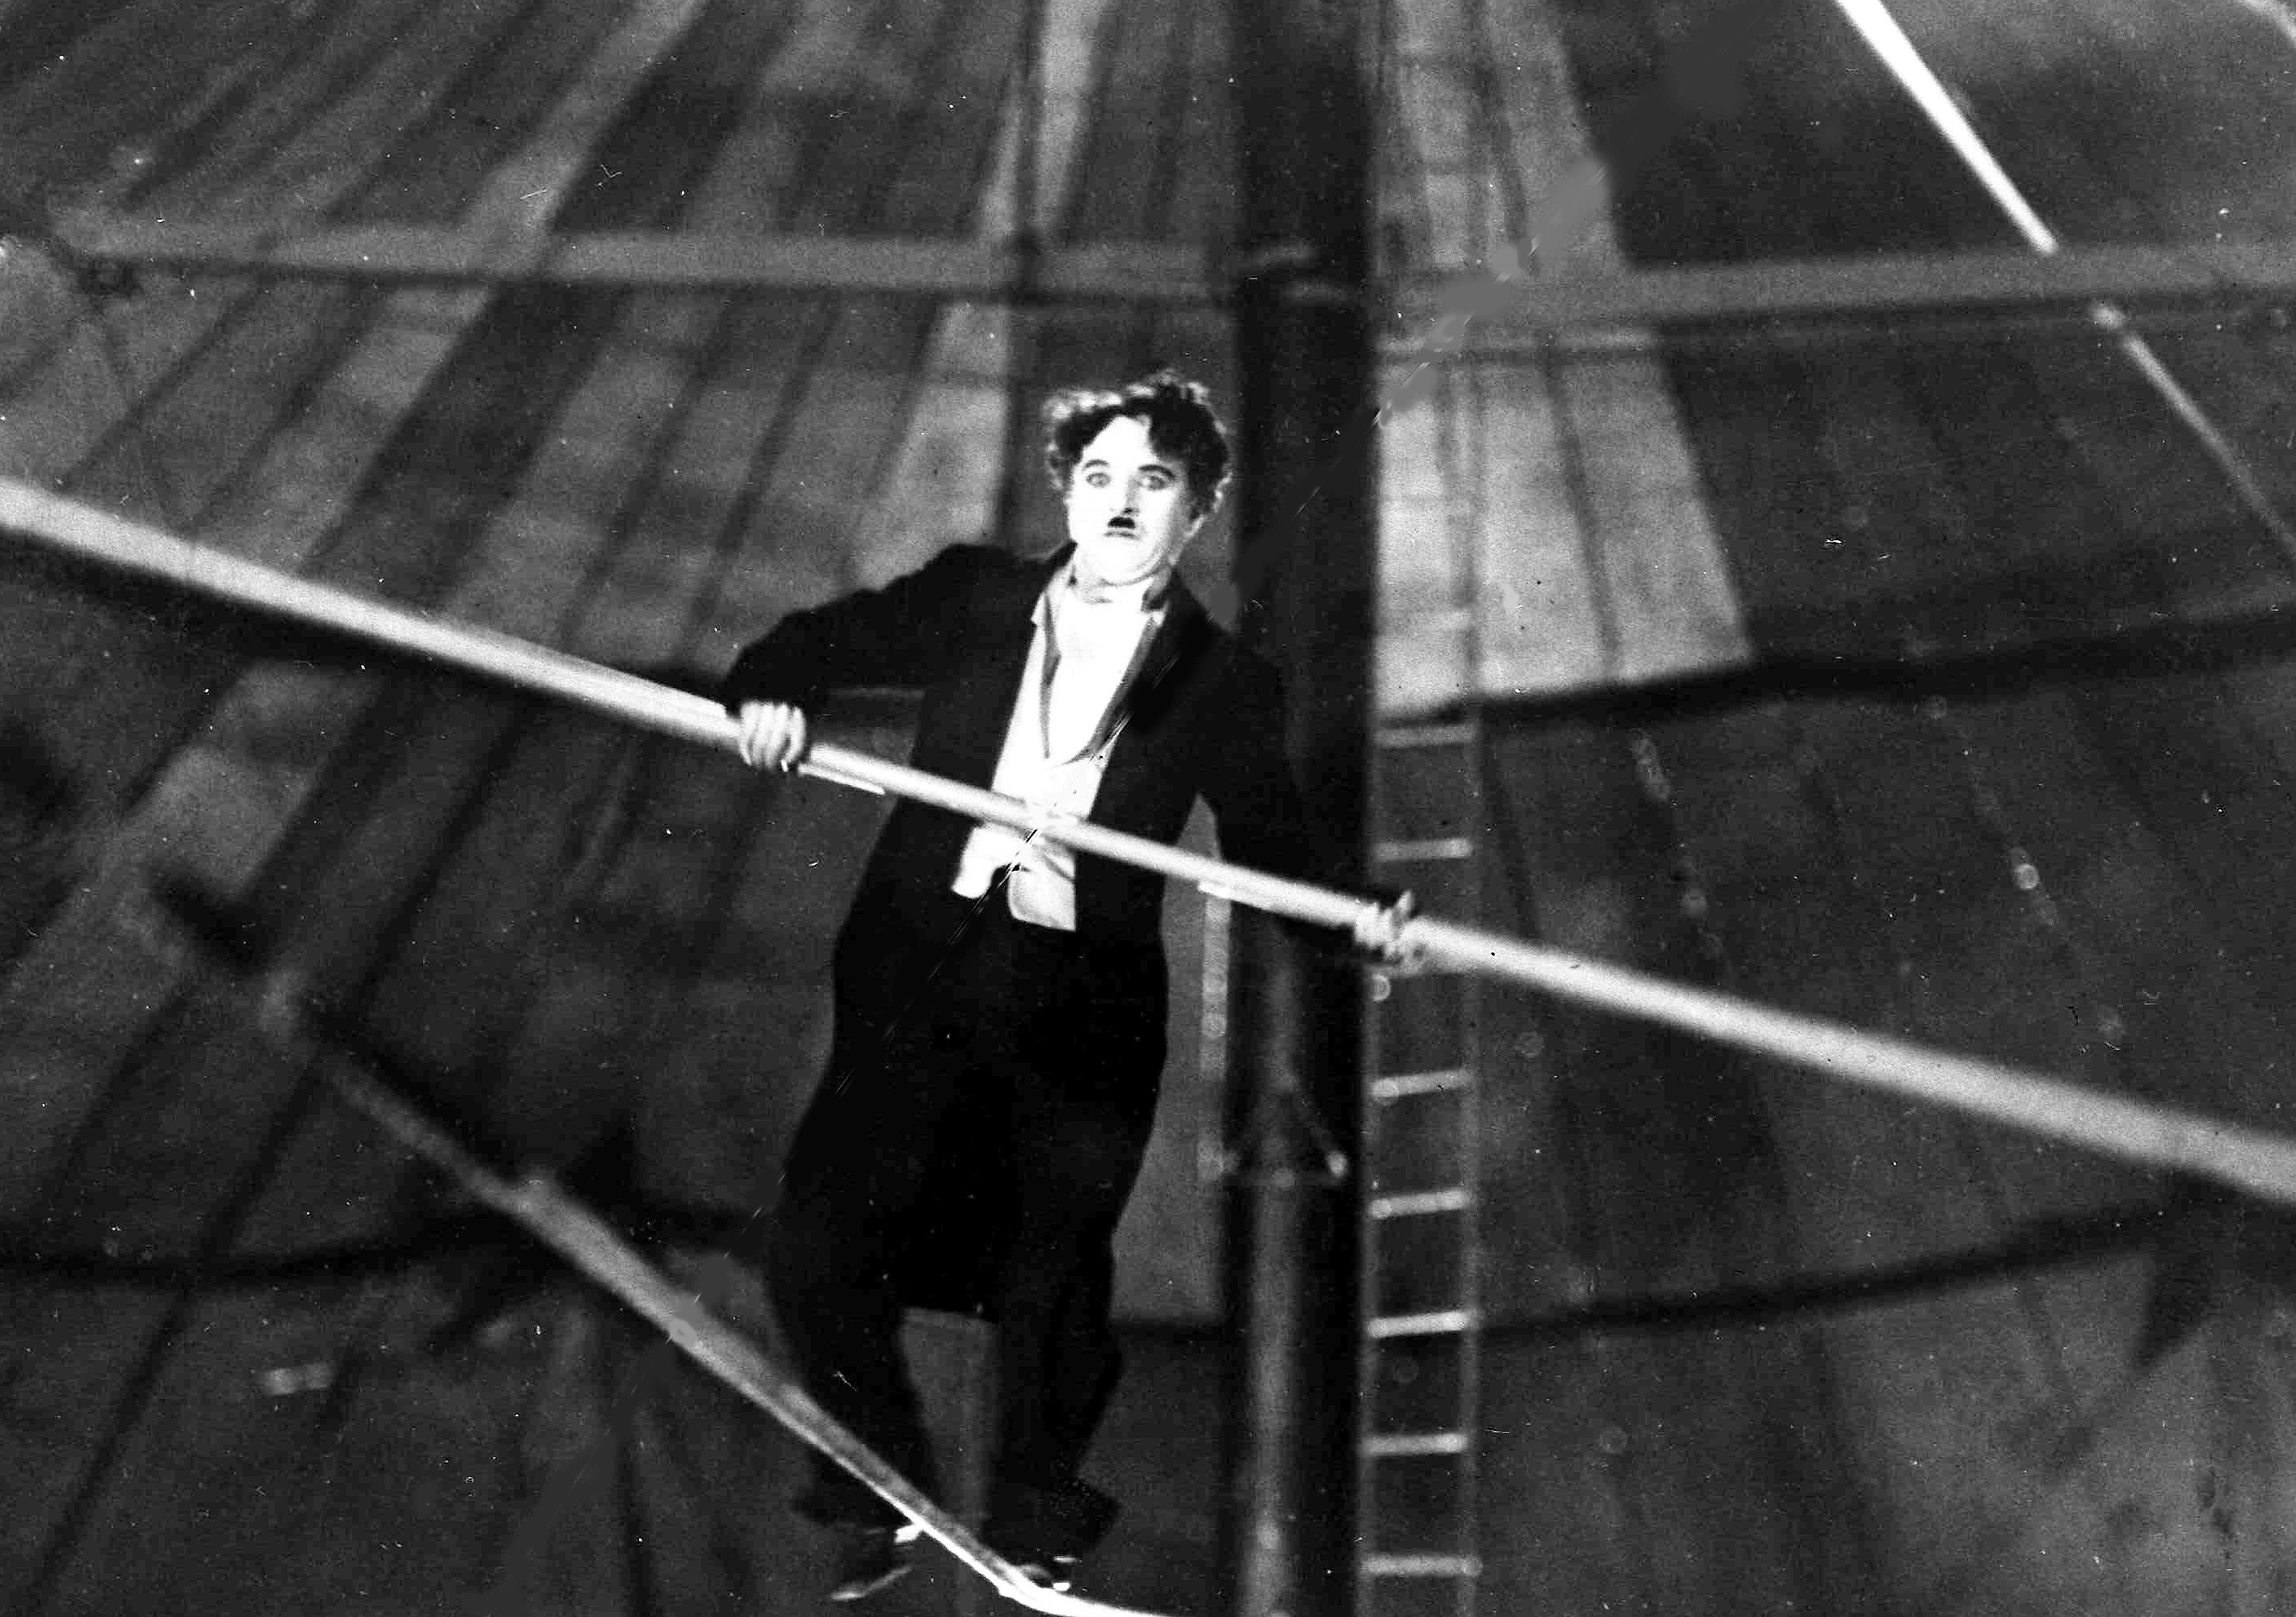 CHAPLIN ON HIGHWIRE